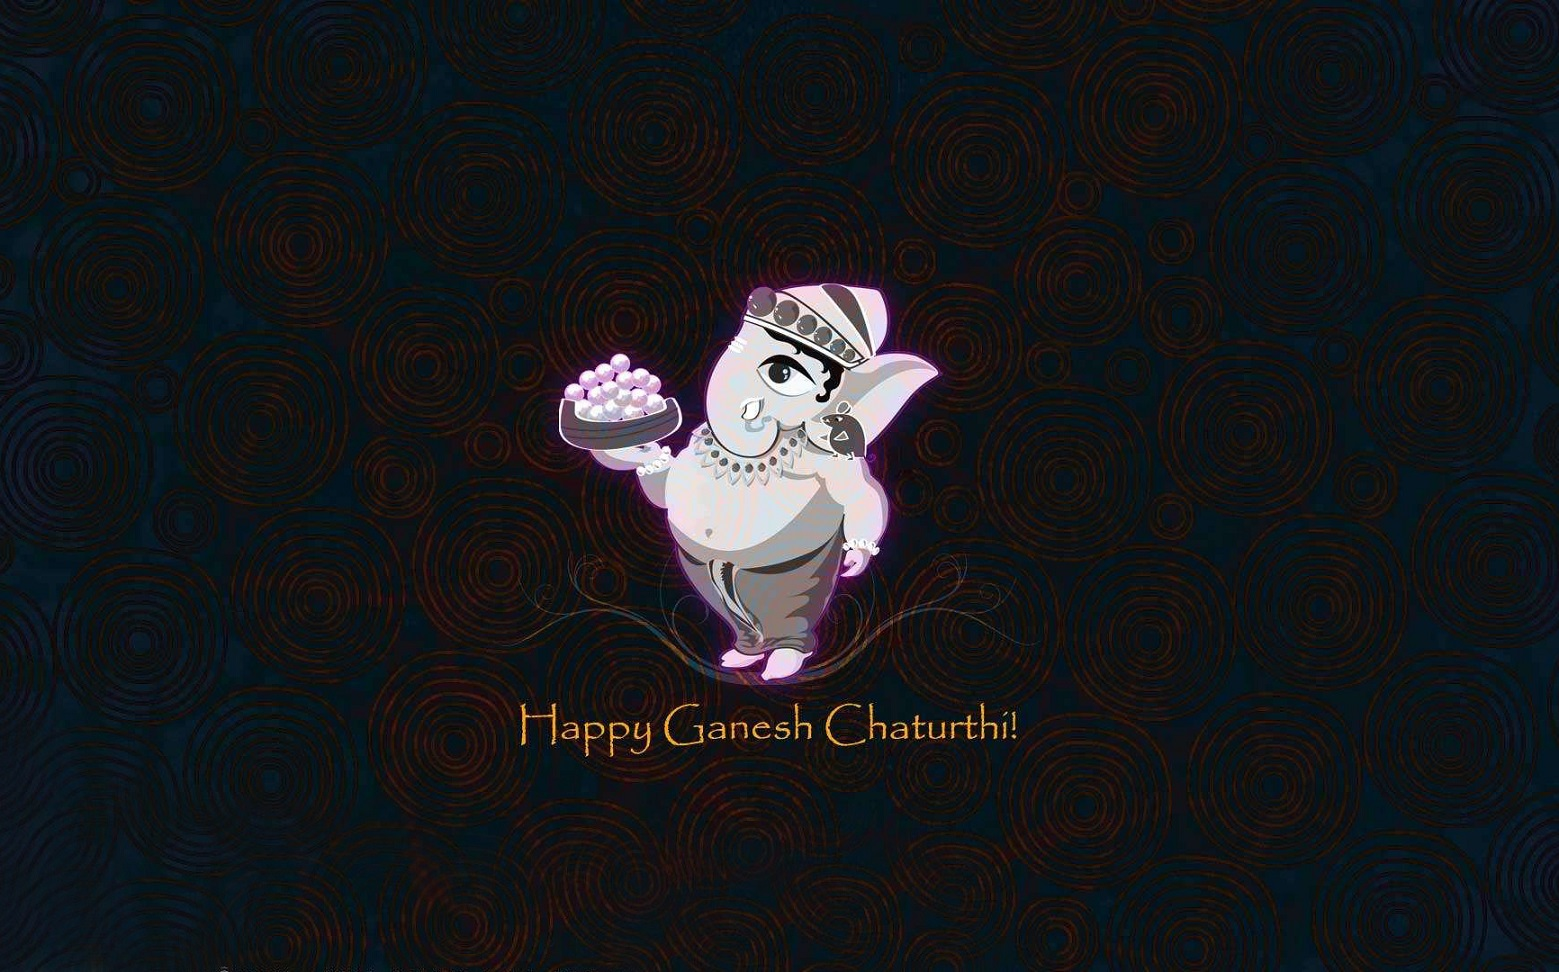 happy vinayaka chavithi ganesh chaturthi or vinayak chaturthi is one of the major conventional celebrations celebrated by the hindu people group it is seen in the hindu schedule